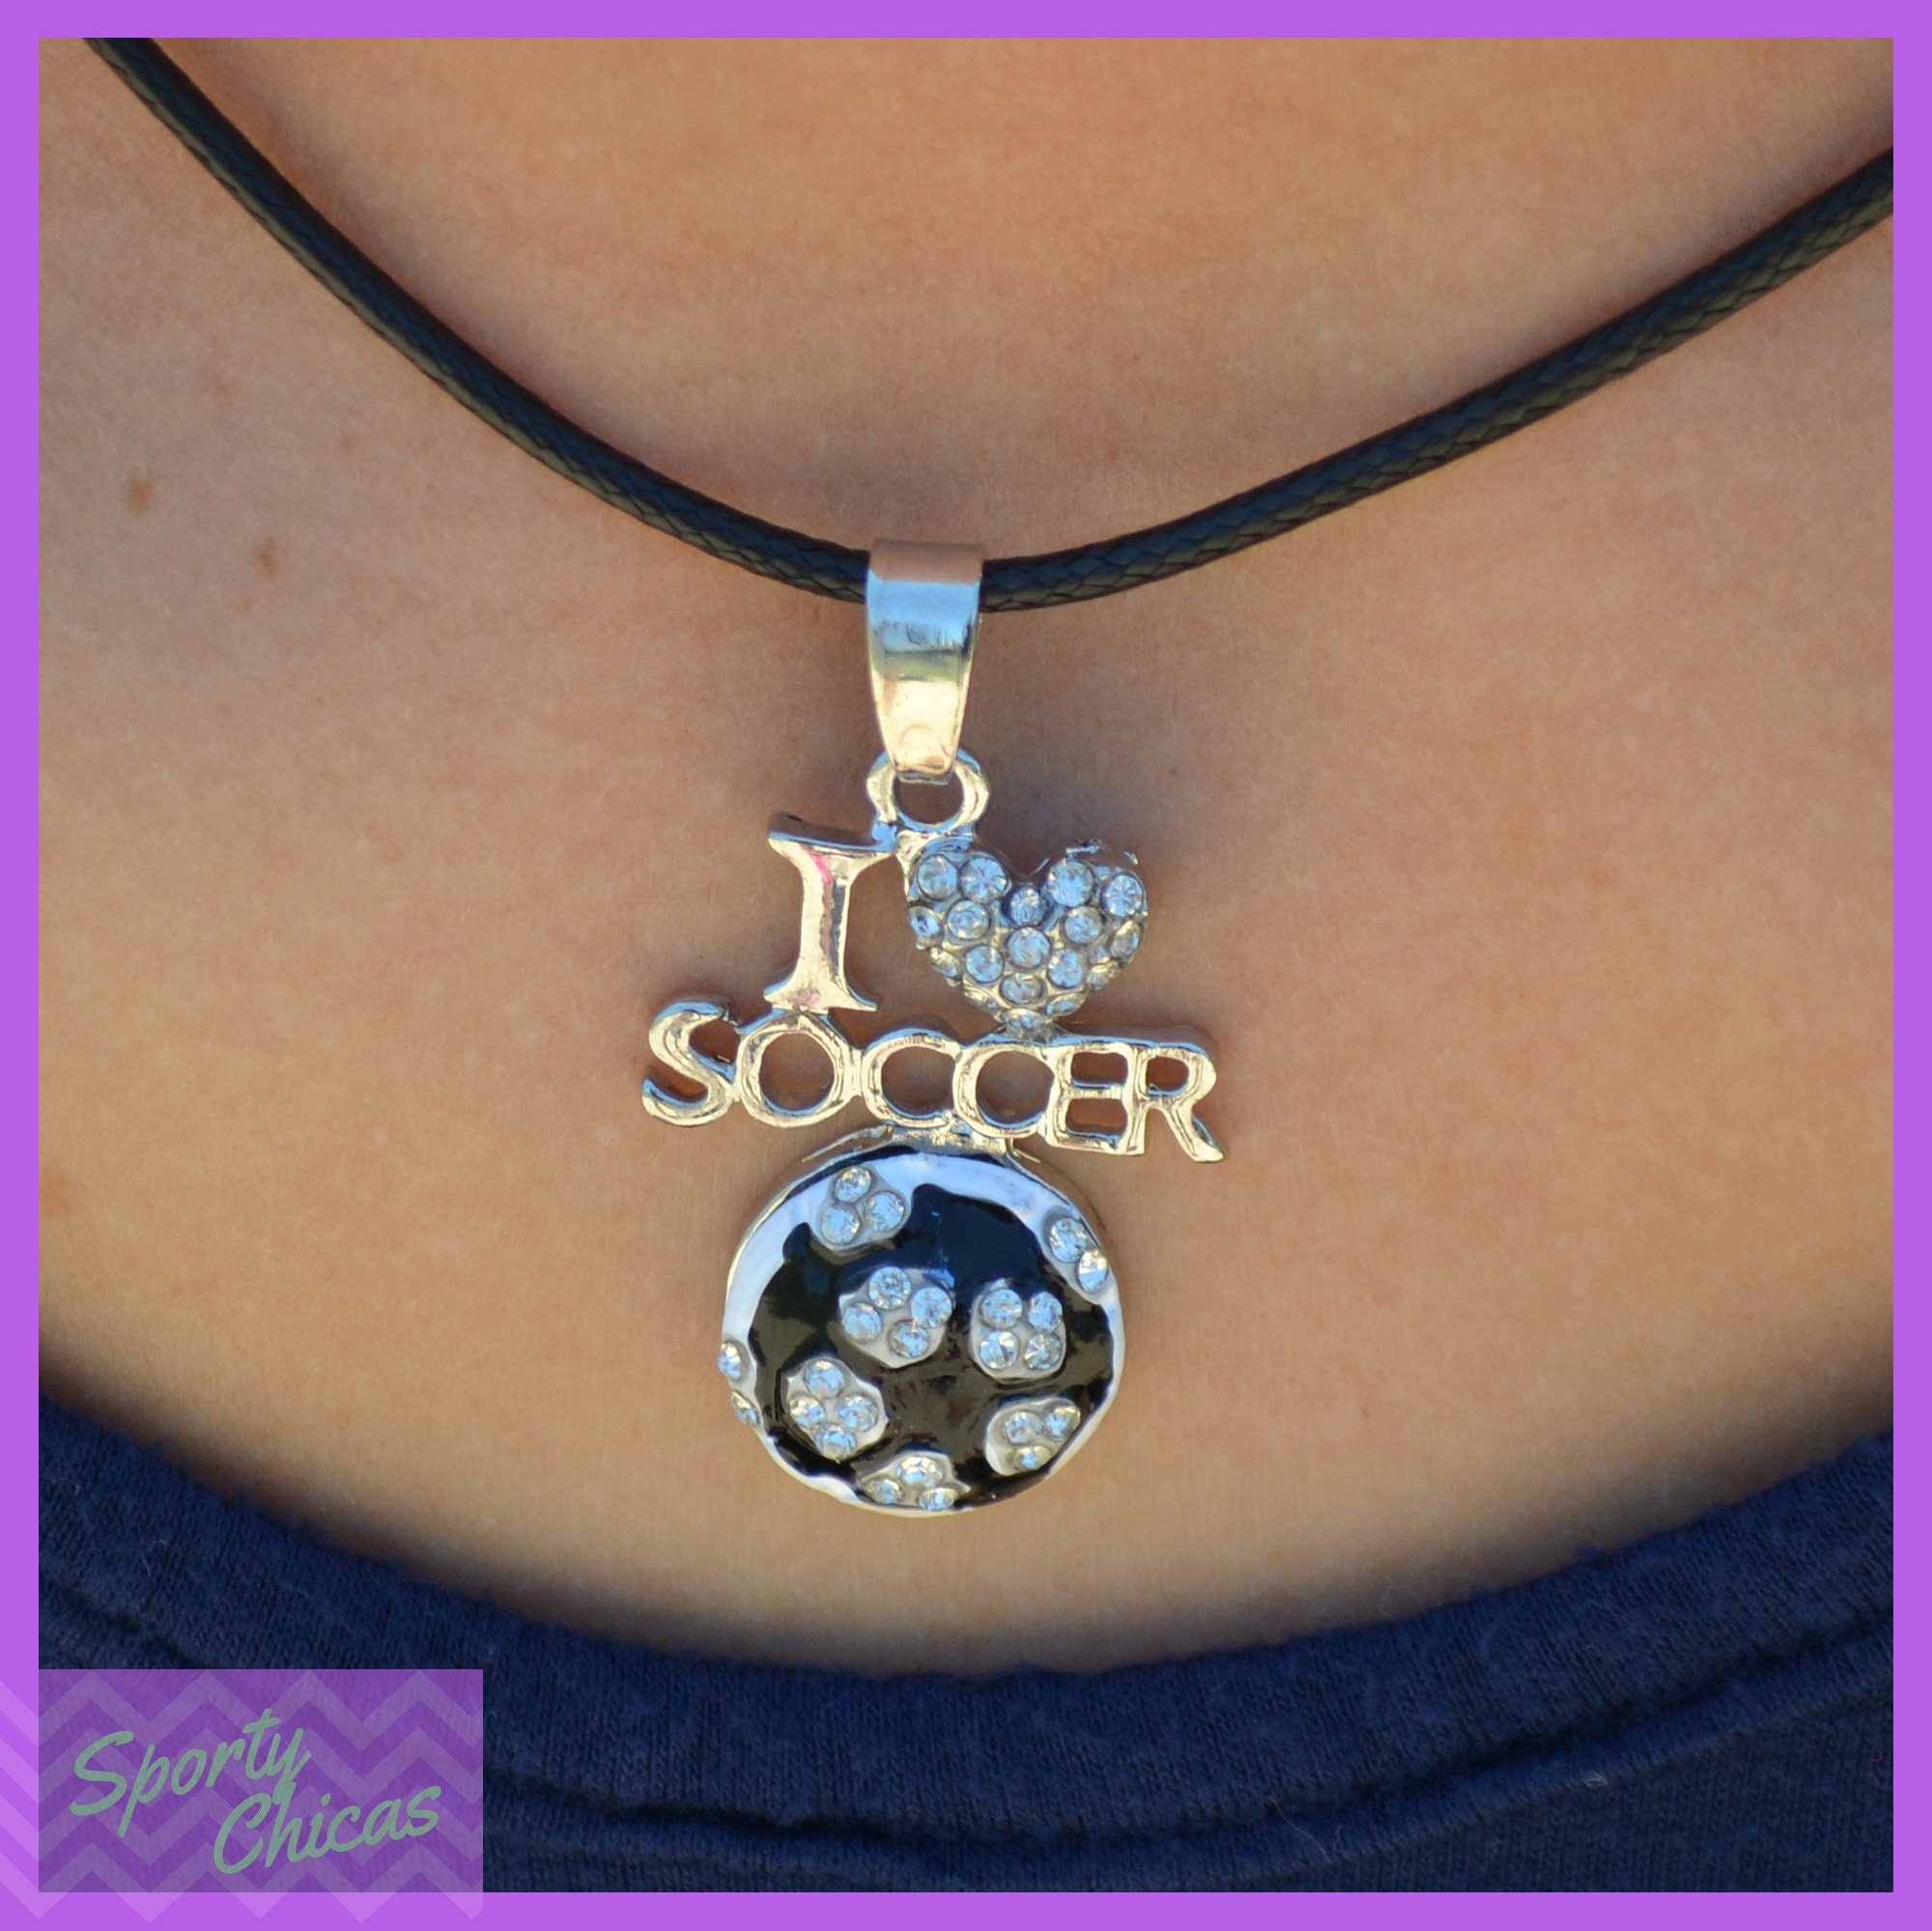 lover gifts products jewelry fullxfull pendant il her for soccer necklace square